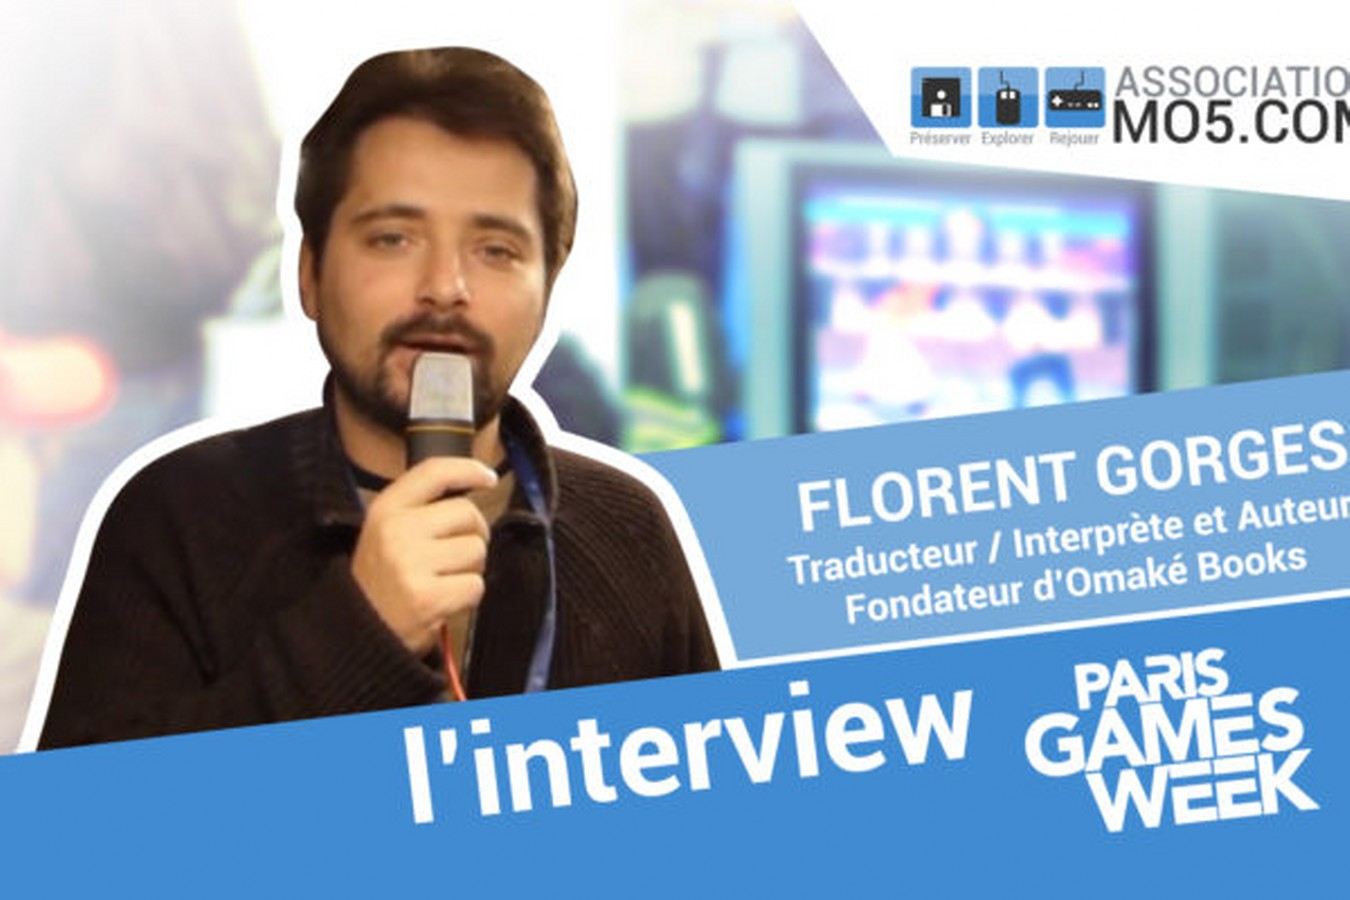 InterviewPGW19 FGORGES